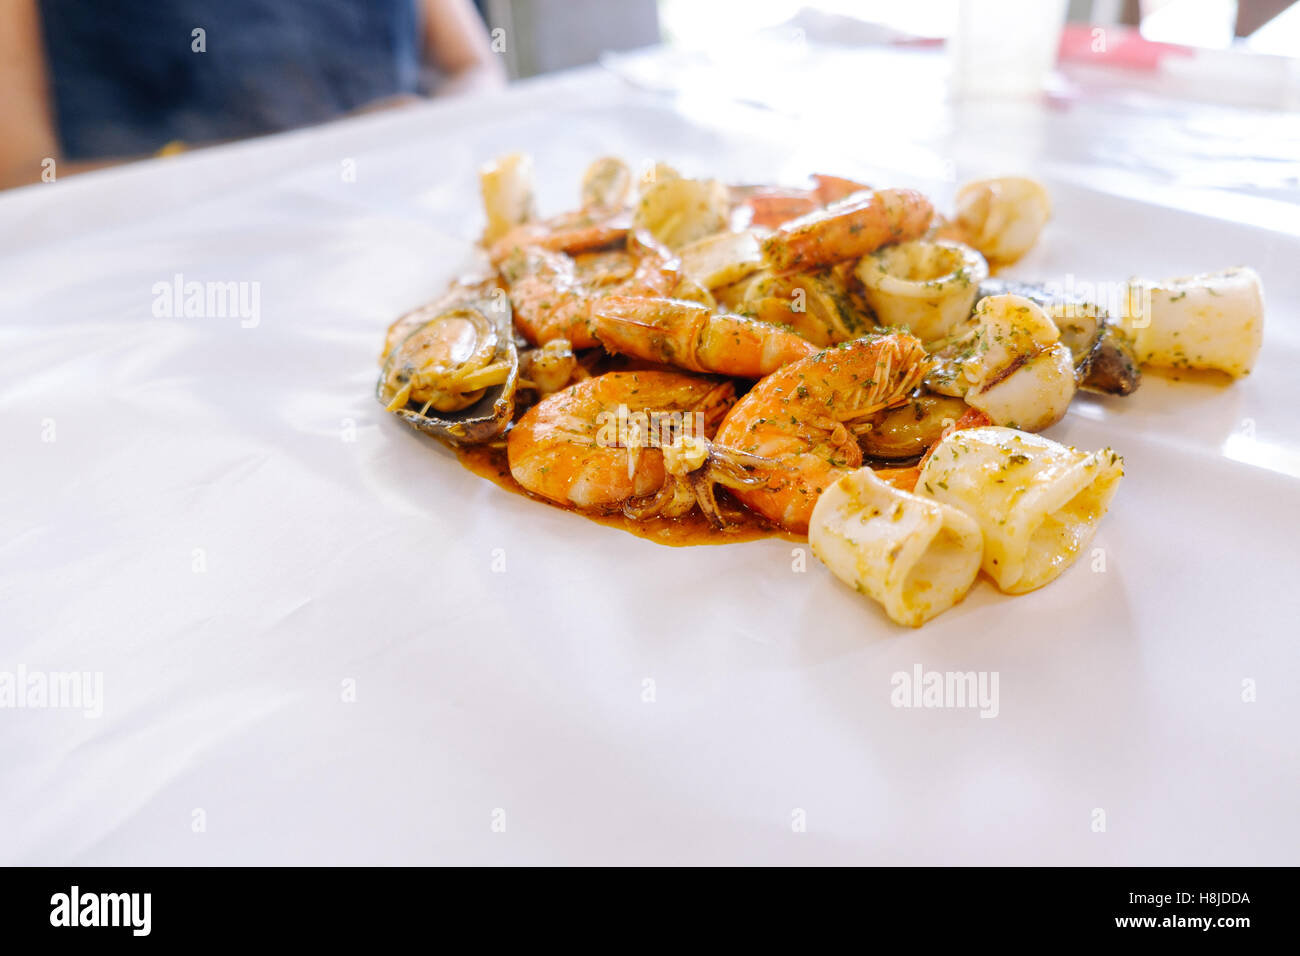 Crustacean seafood with mussels, oysters and shrimps on the table and white wax paper, selective focus, Food background. Stock Photo